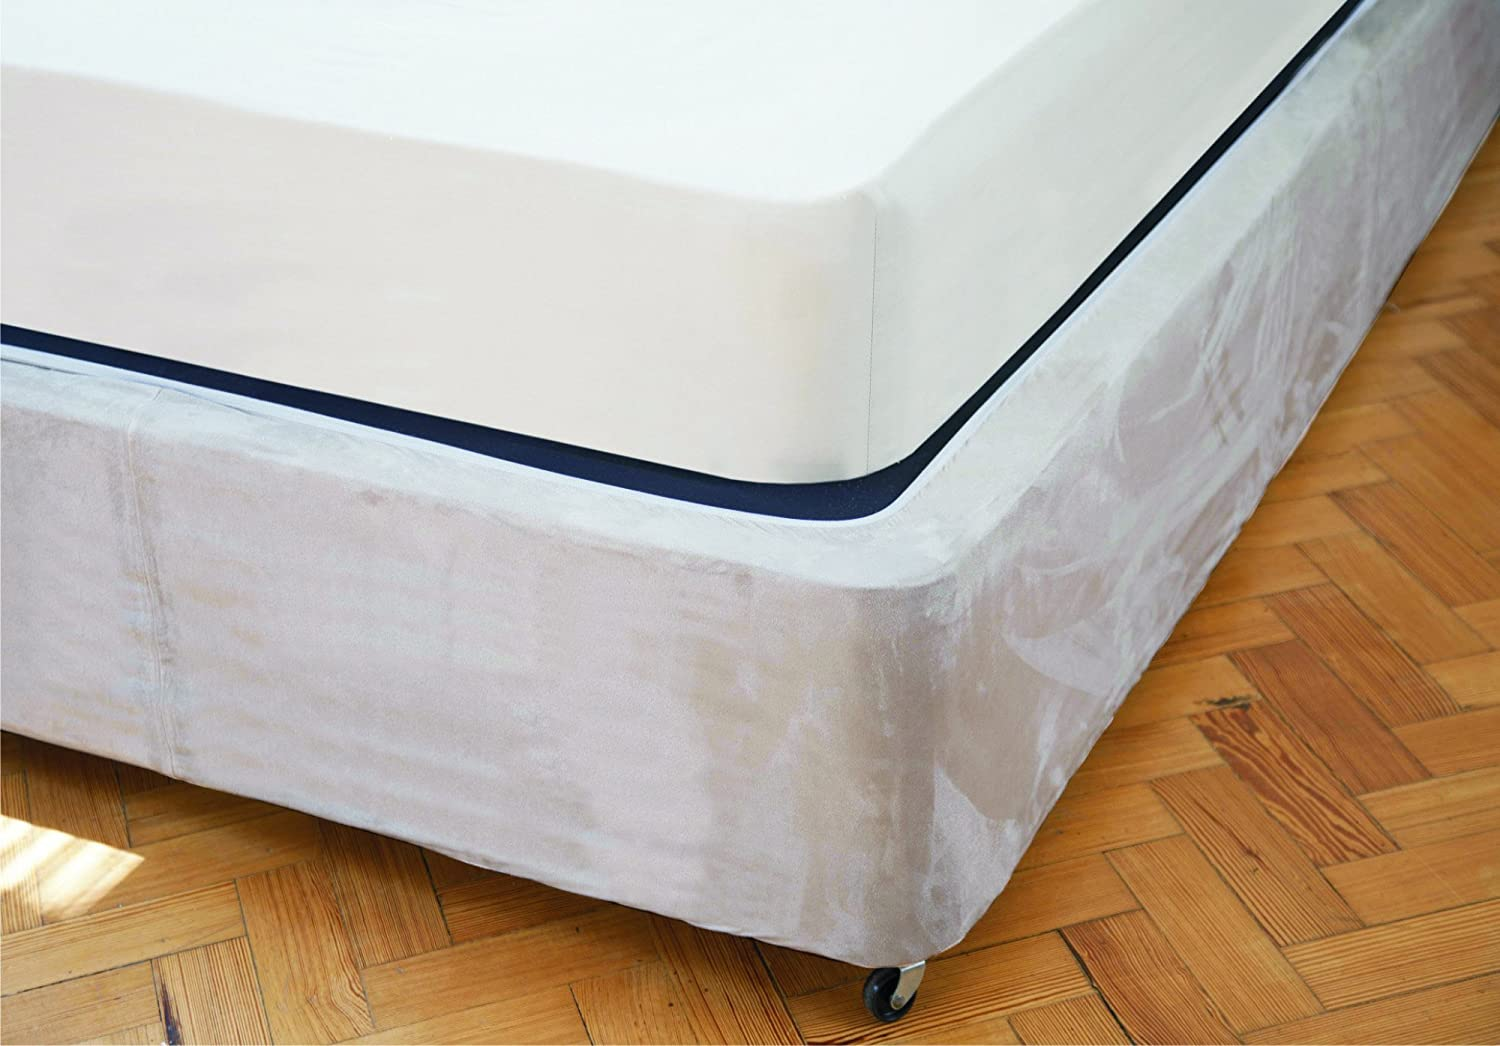 amazon.co.uk: bed skirts & valances: home & kitchen - Letto Contenitore Super King Size